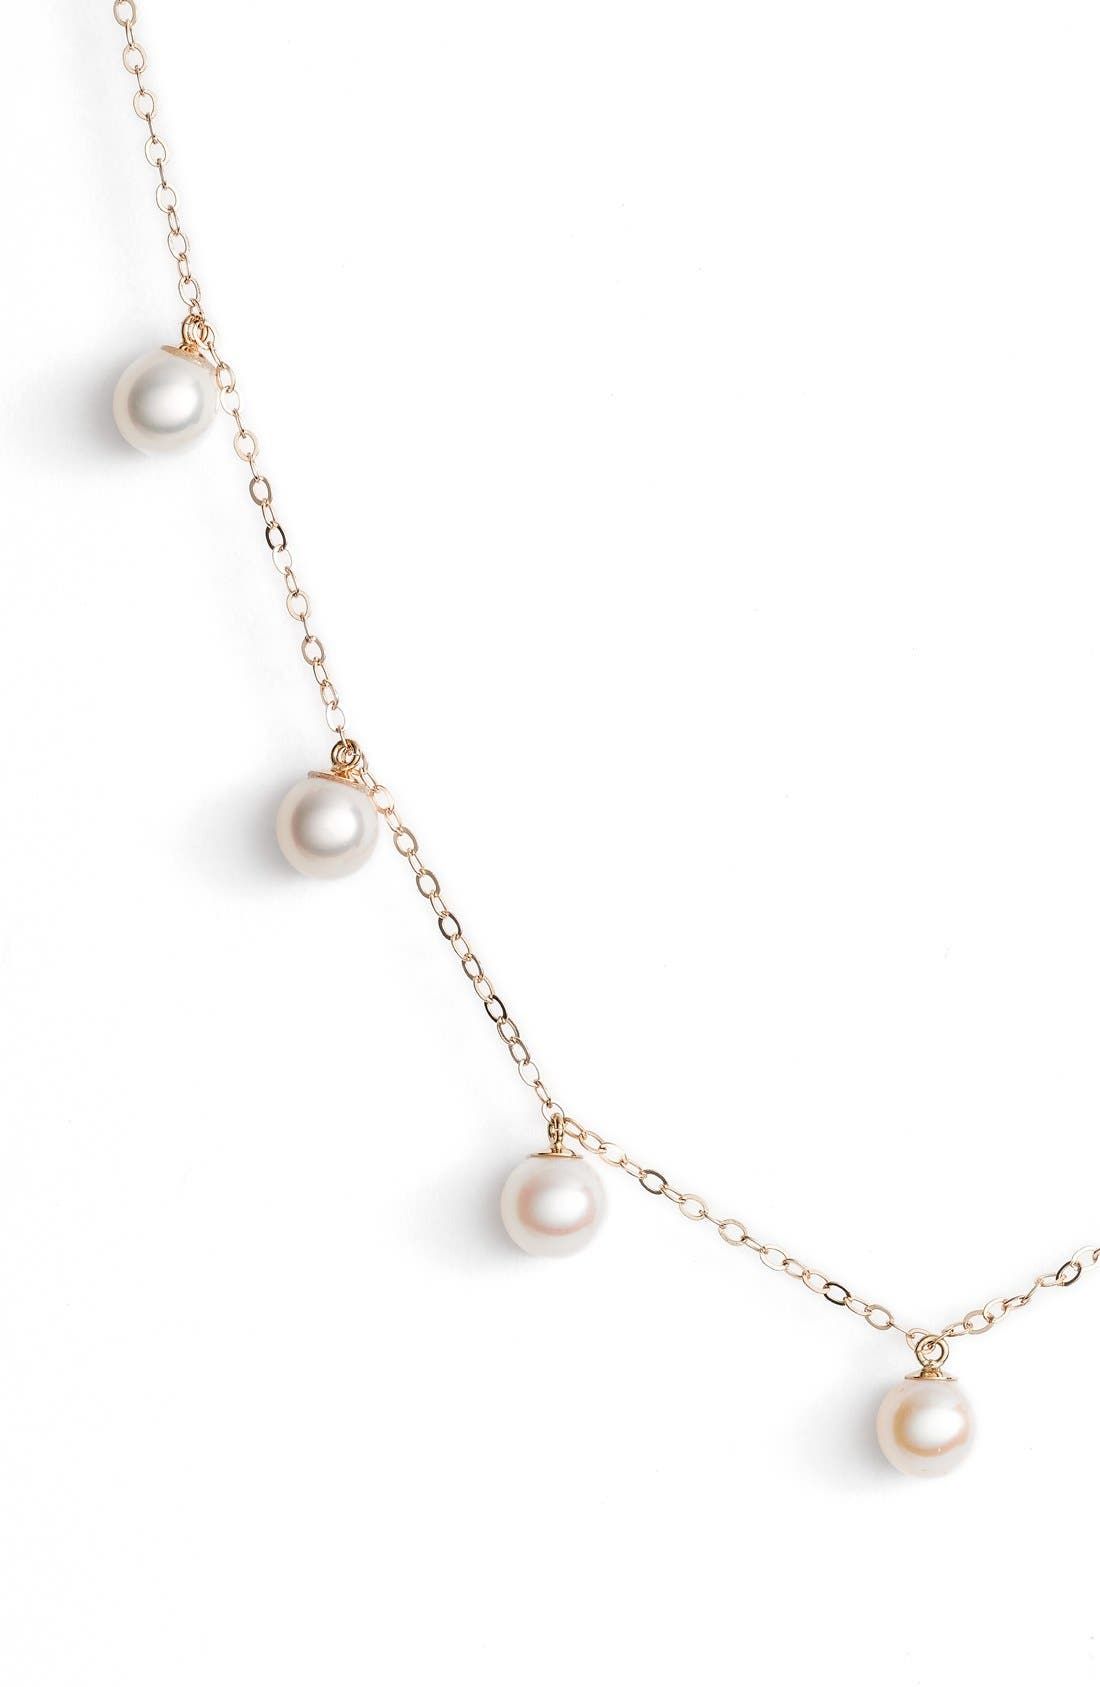 Pearl Collar Necklace,                             Alternate thumbnail 5, color,                             YELLOW GOLD/ PEARL